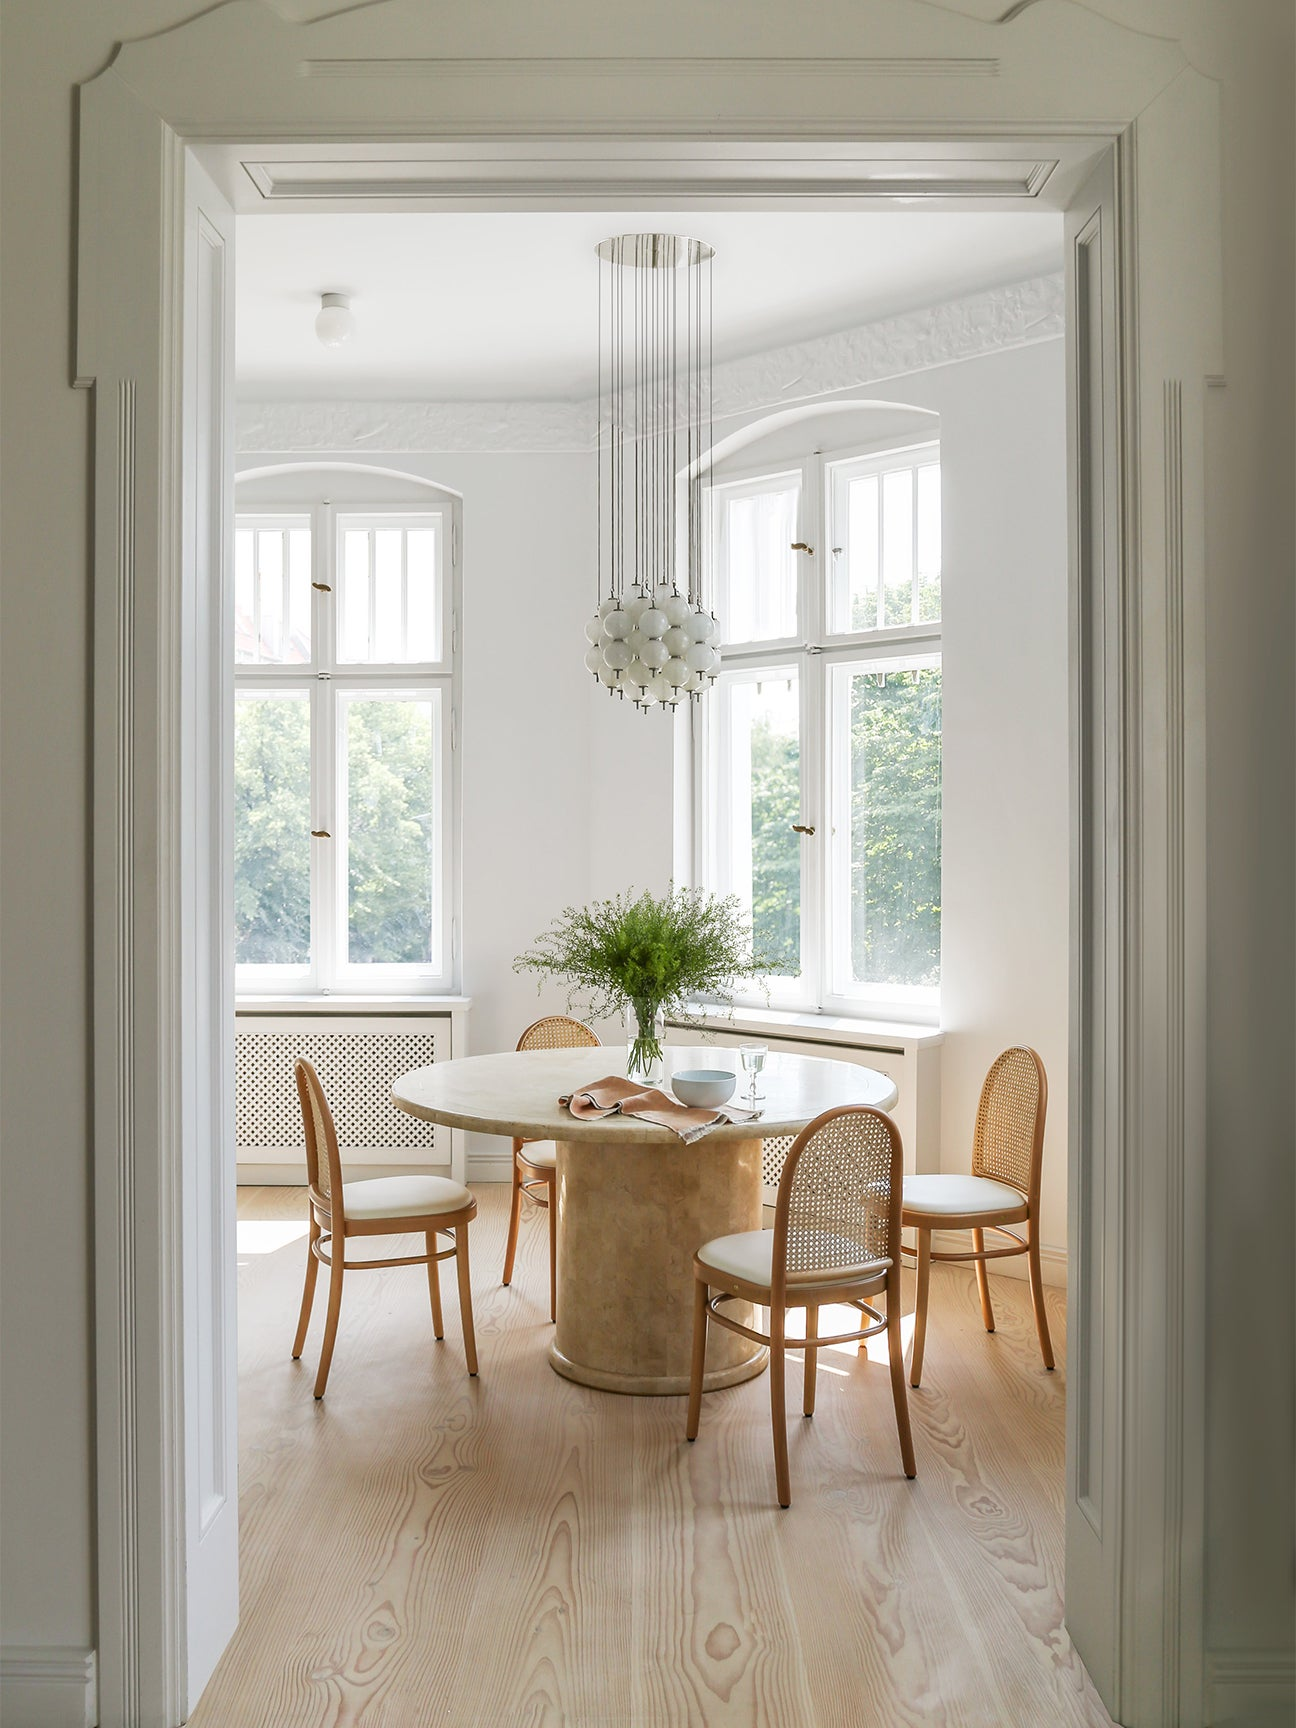 dining room nook with wooden chairs